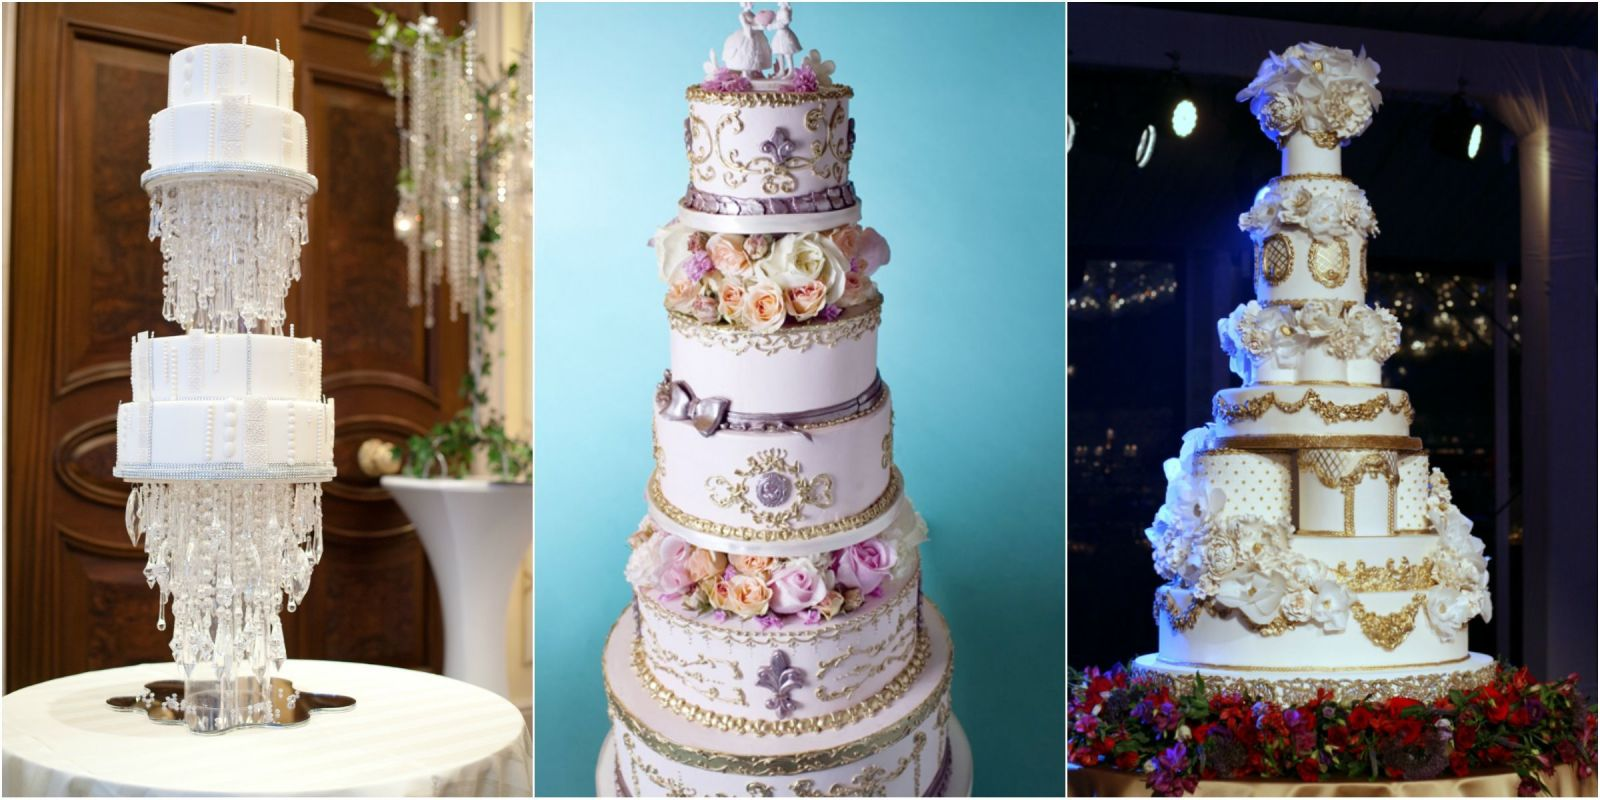 Outrageous and Crazy Wedding Cakes — Delish